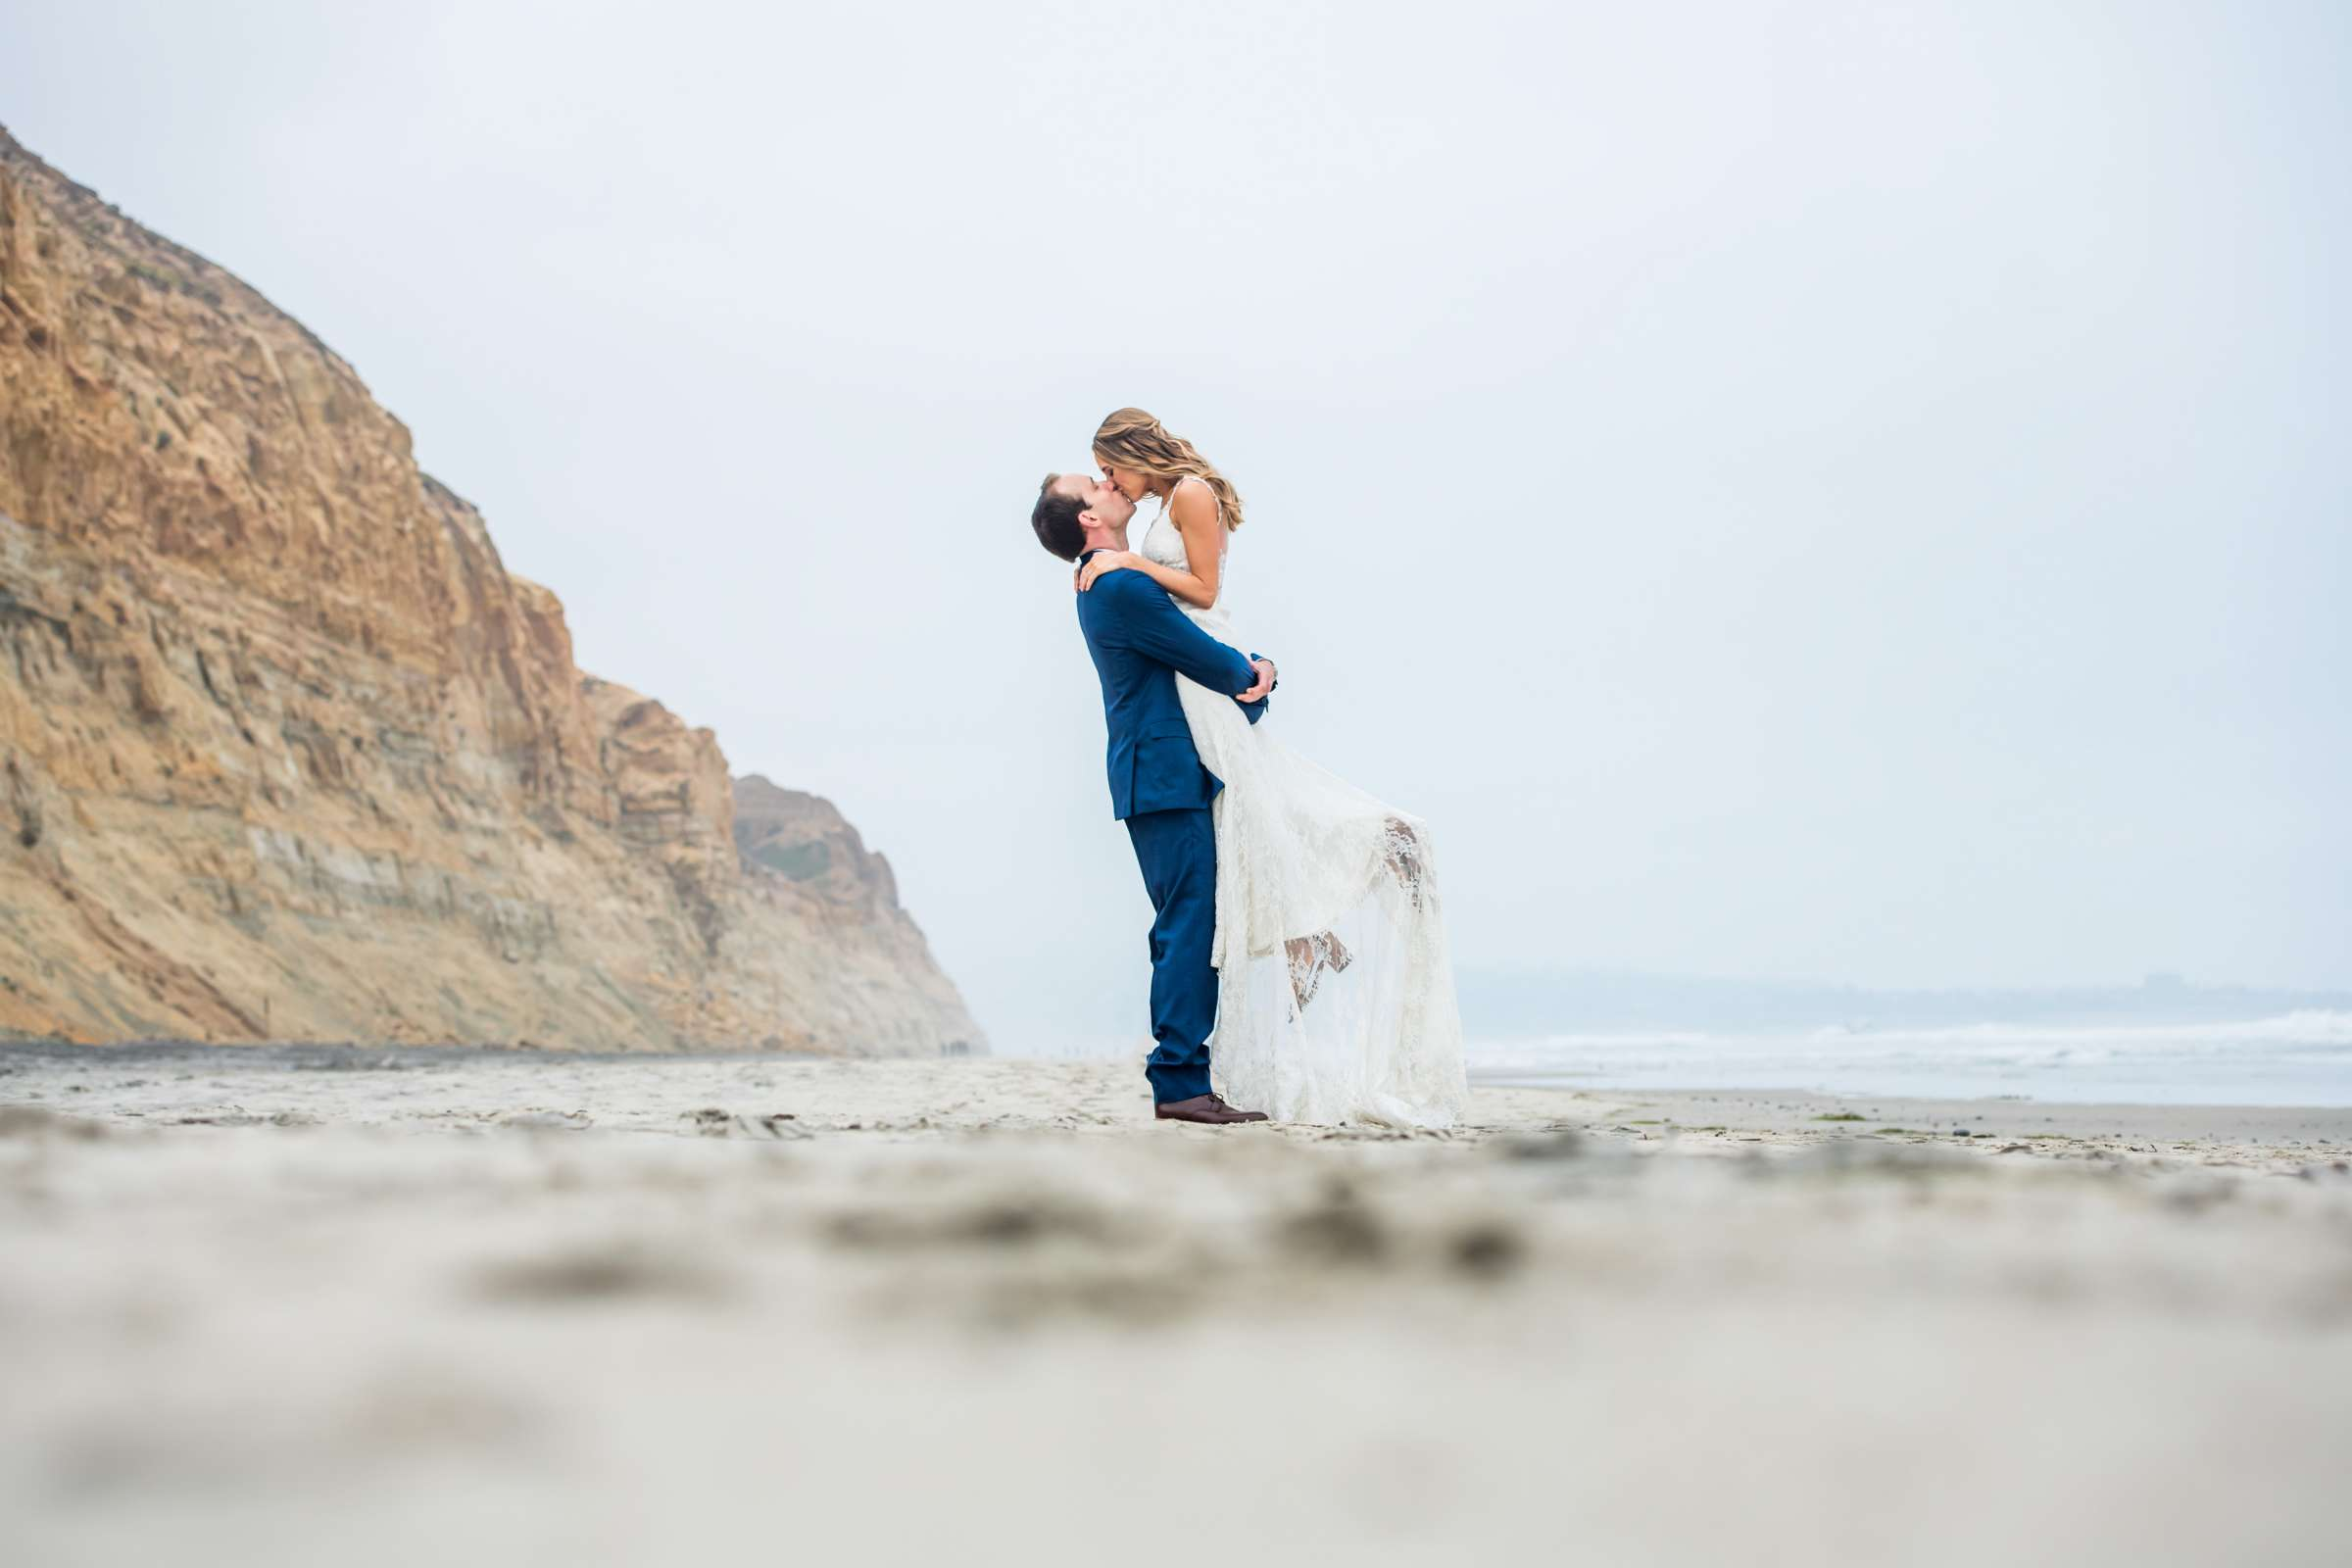 Torrey Pines State Natural Reserve Wedding, Lizzy and Justin Wedding Photo #3 by True Photography